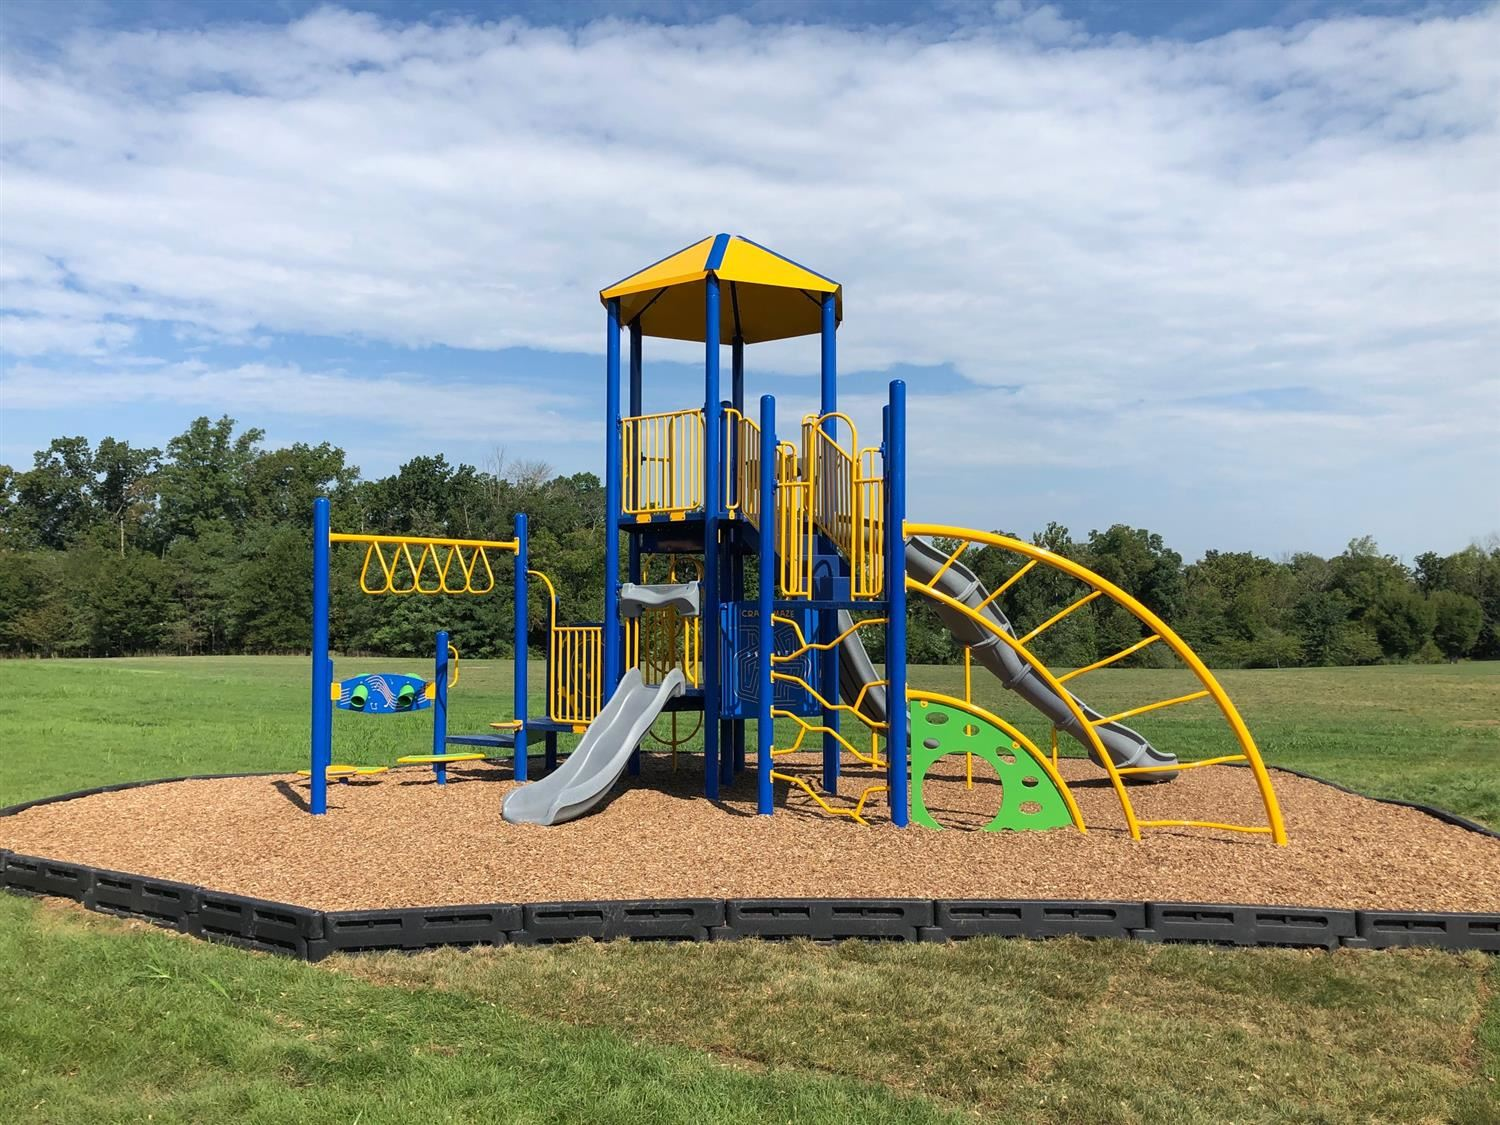 Our new playground is done! So exciting!